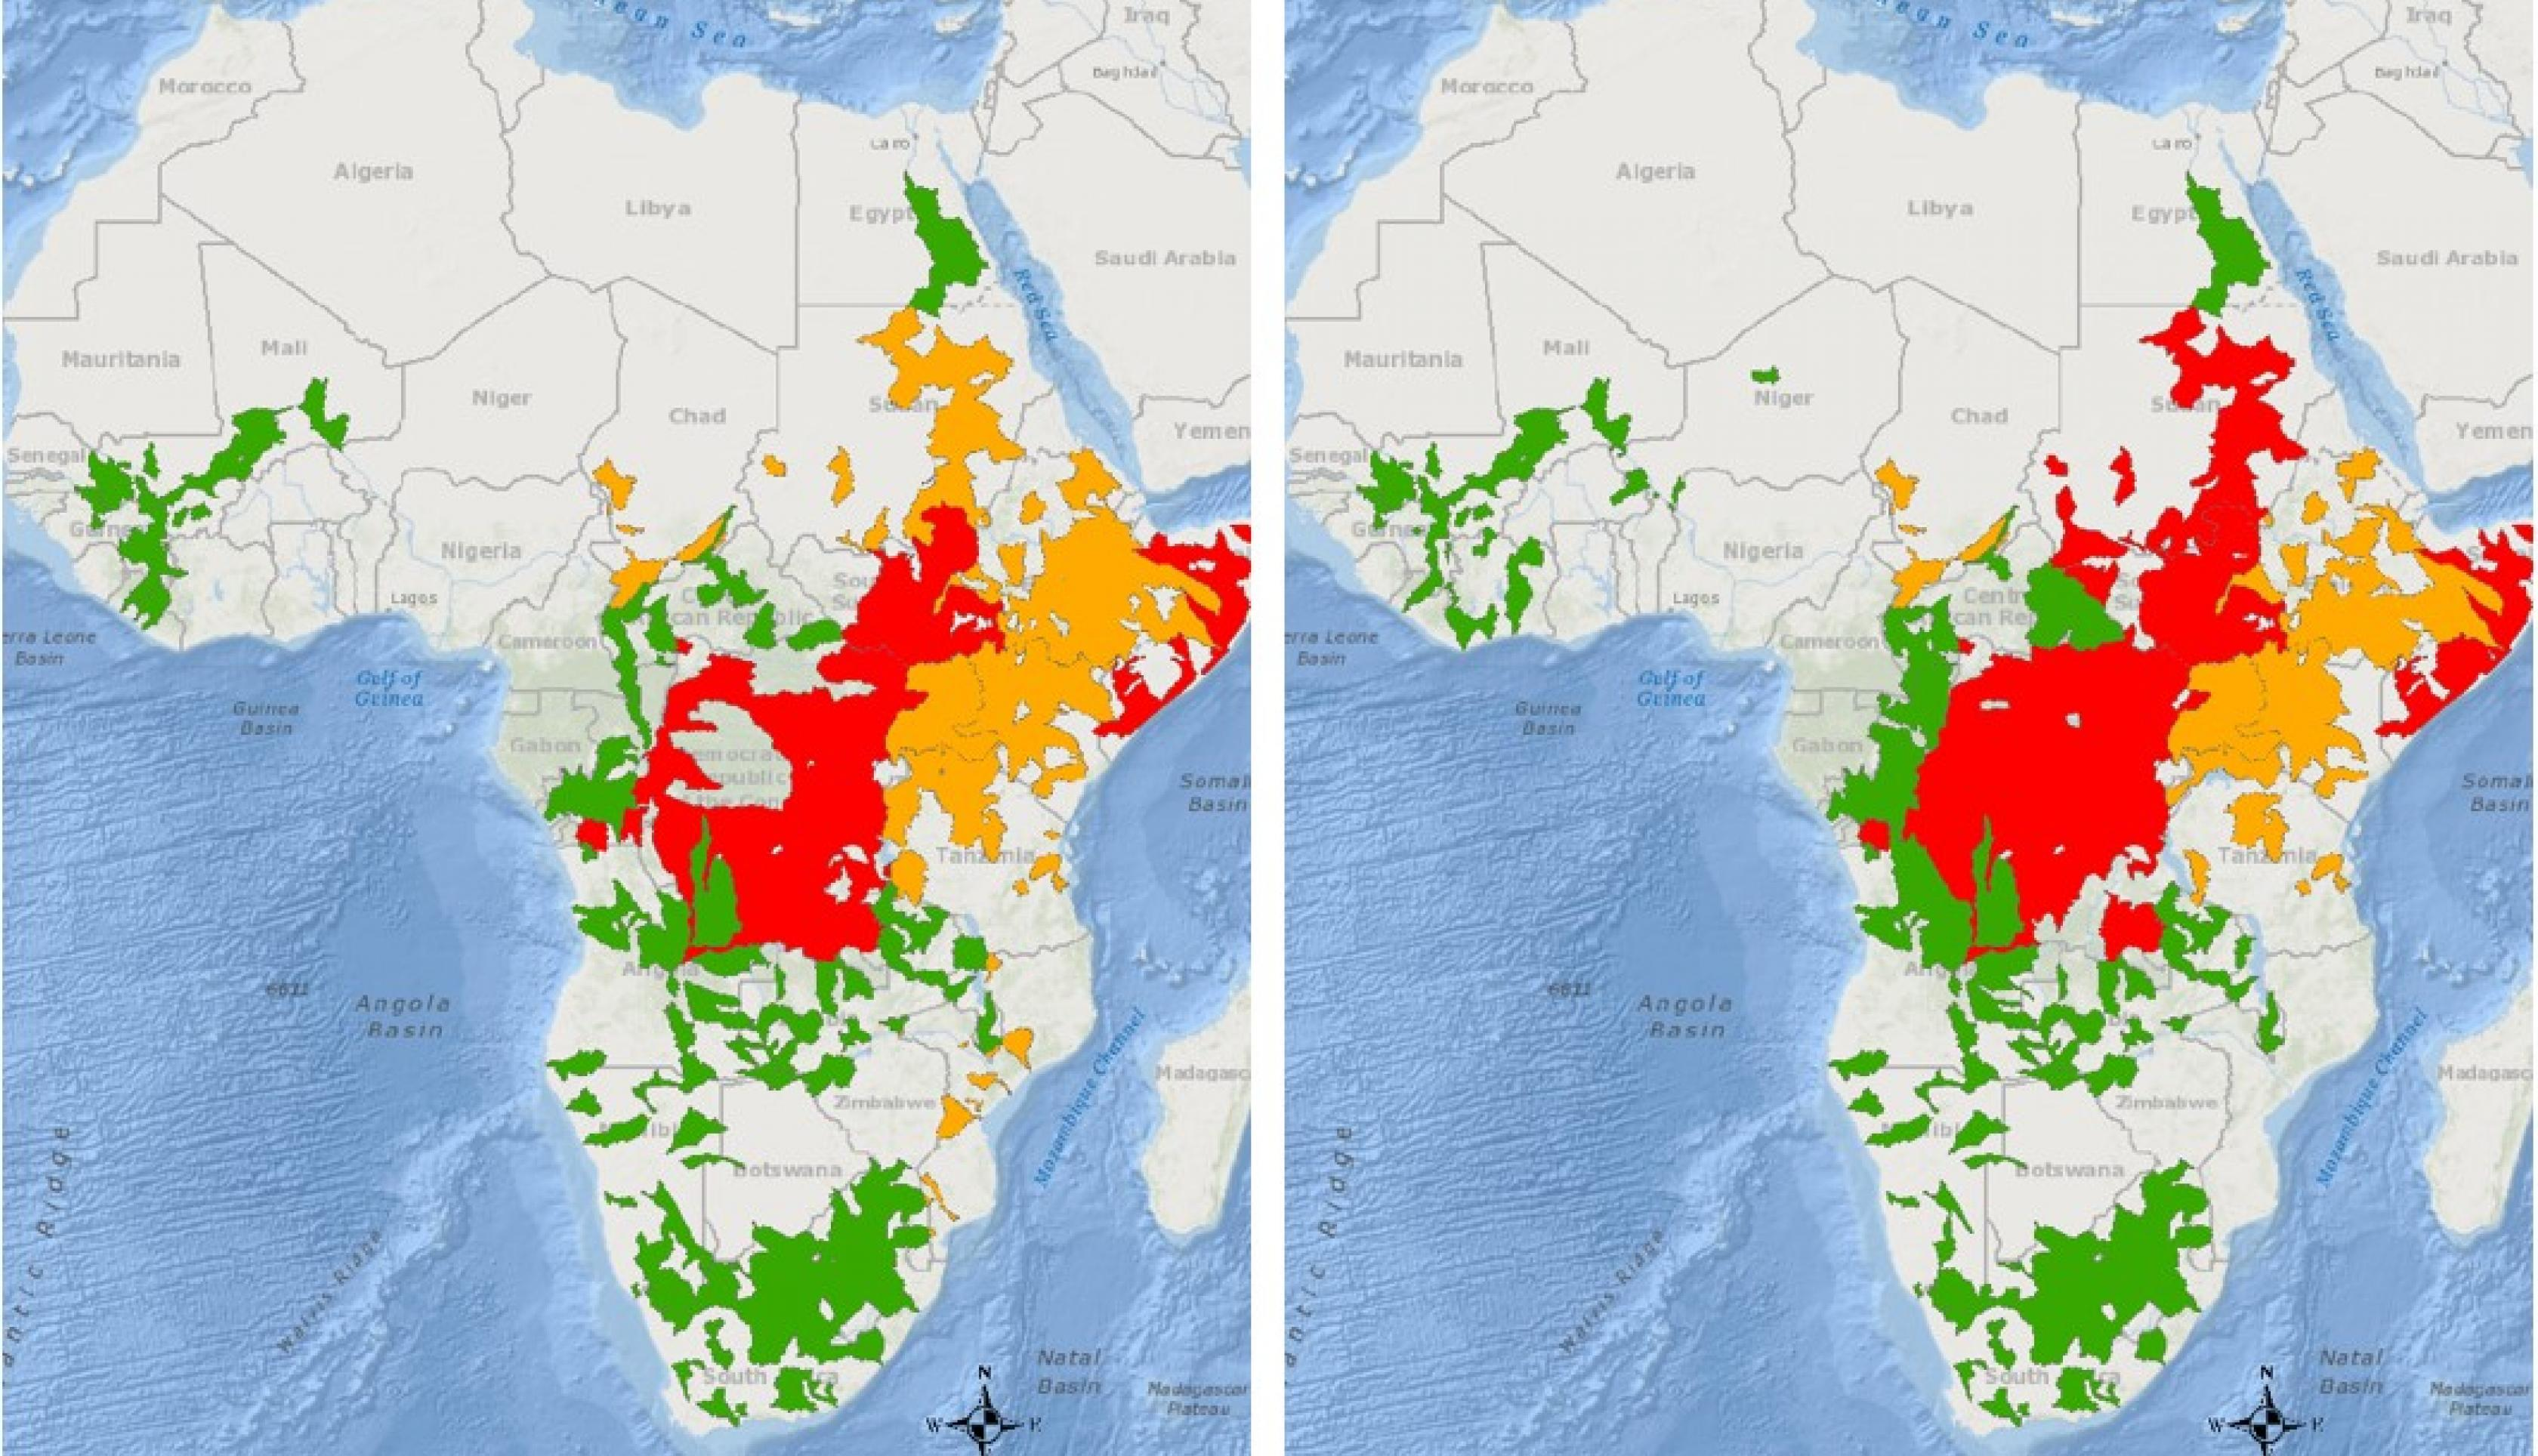 These maps from Glasscoe's project indicate flood advisory warnings from May 5 and 6, 2020. Red represents flood warnings, orange shows flood watches, and green shows flood advisories that depict an increasing flooding likelihood across the Congo and Sudan. Credits: NASA / Margaret T. Glasscoe (JPL)